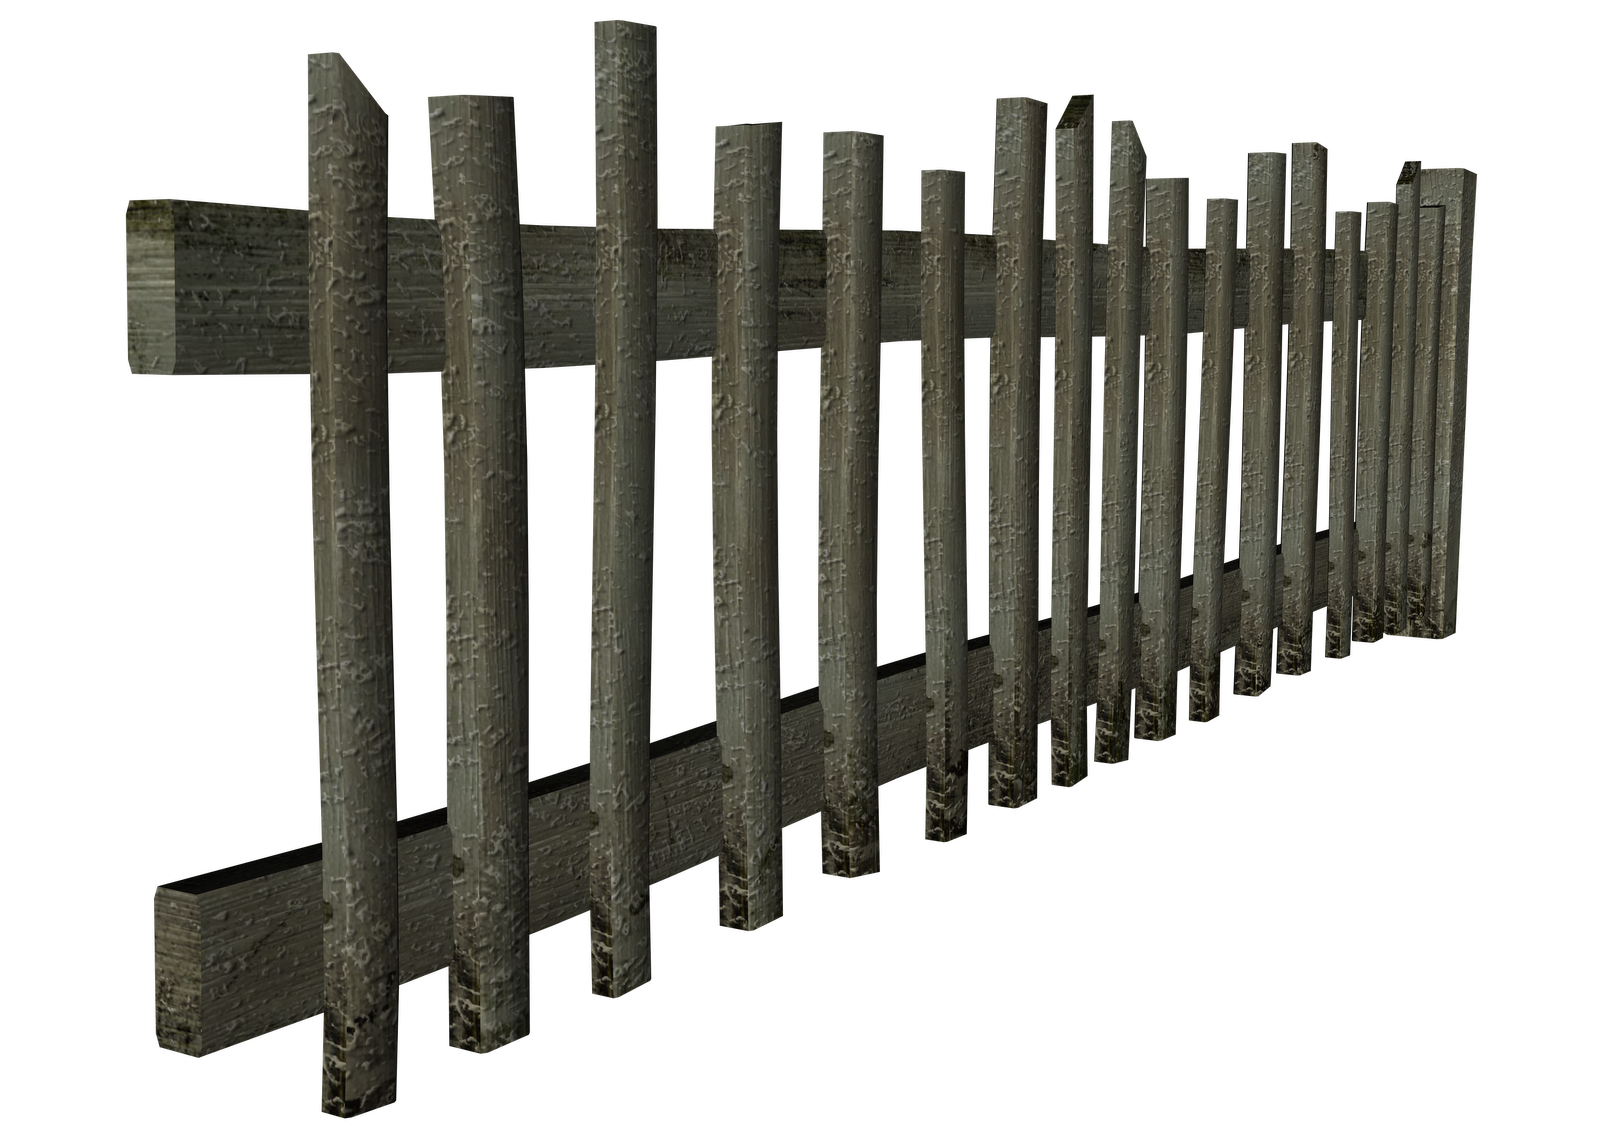 Gate clipart fenced yard. Objects fence png panda